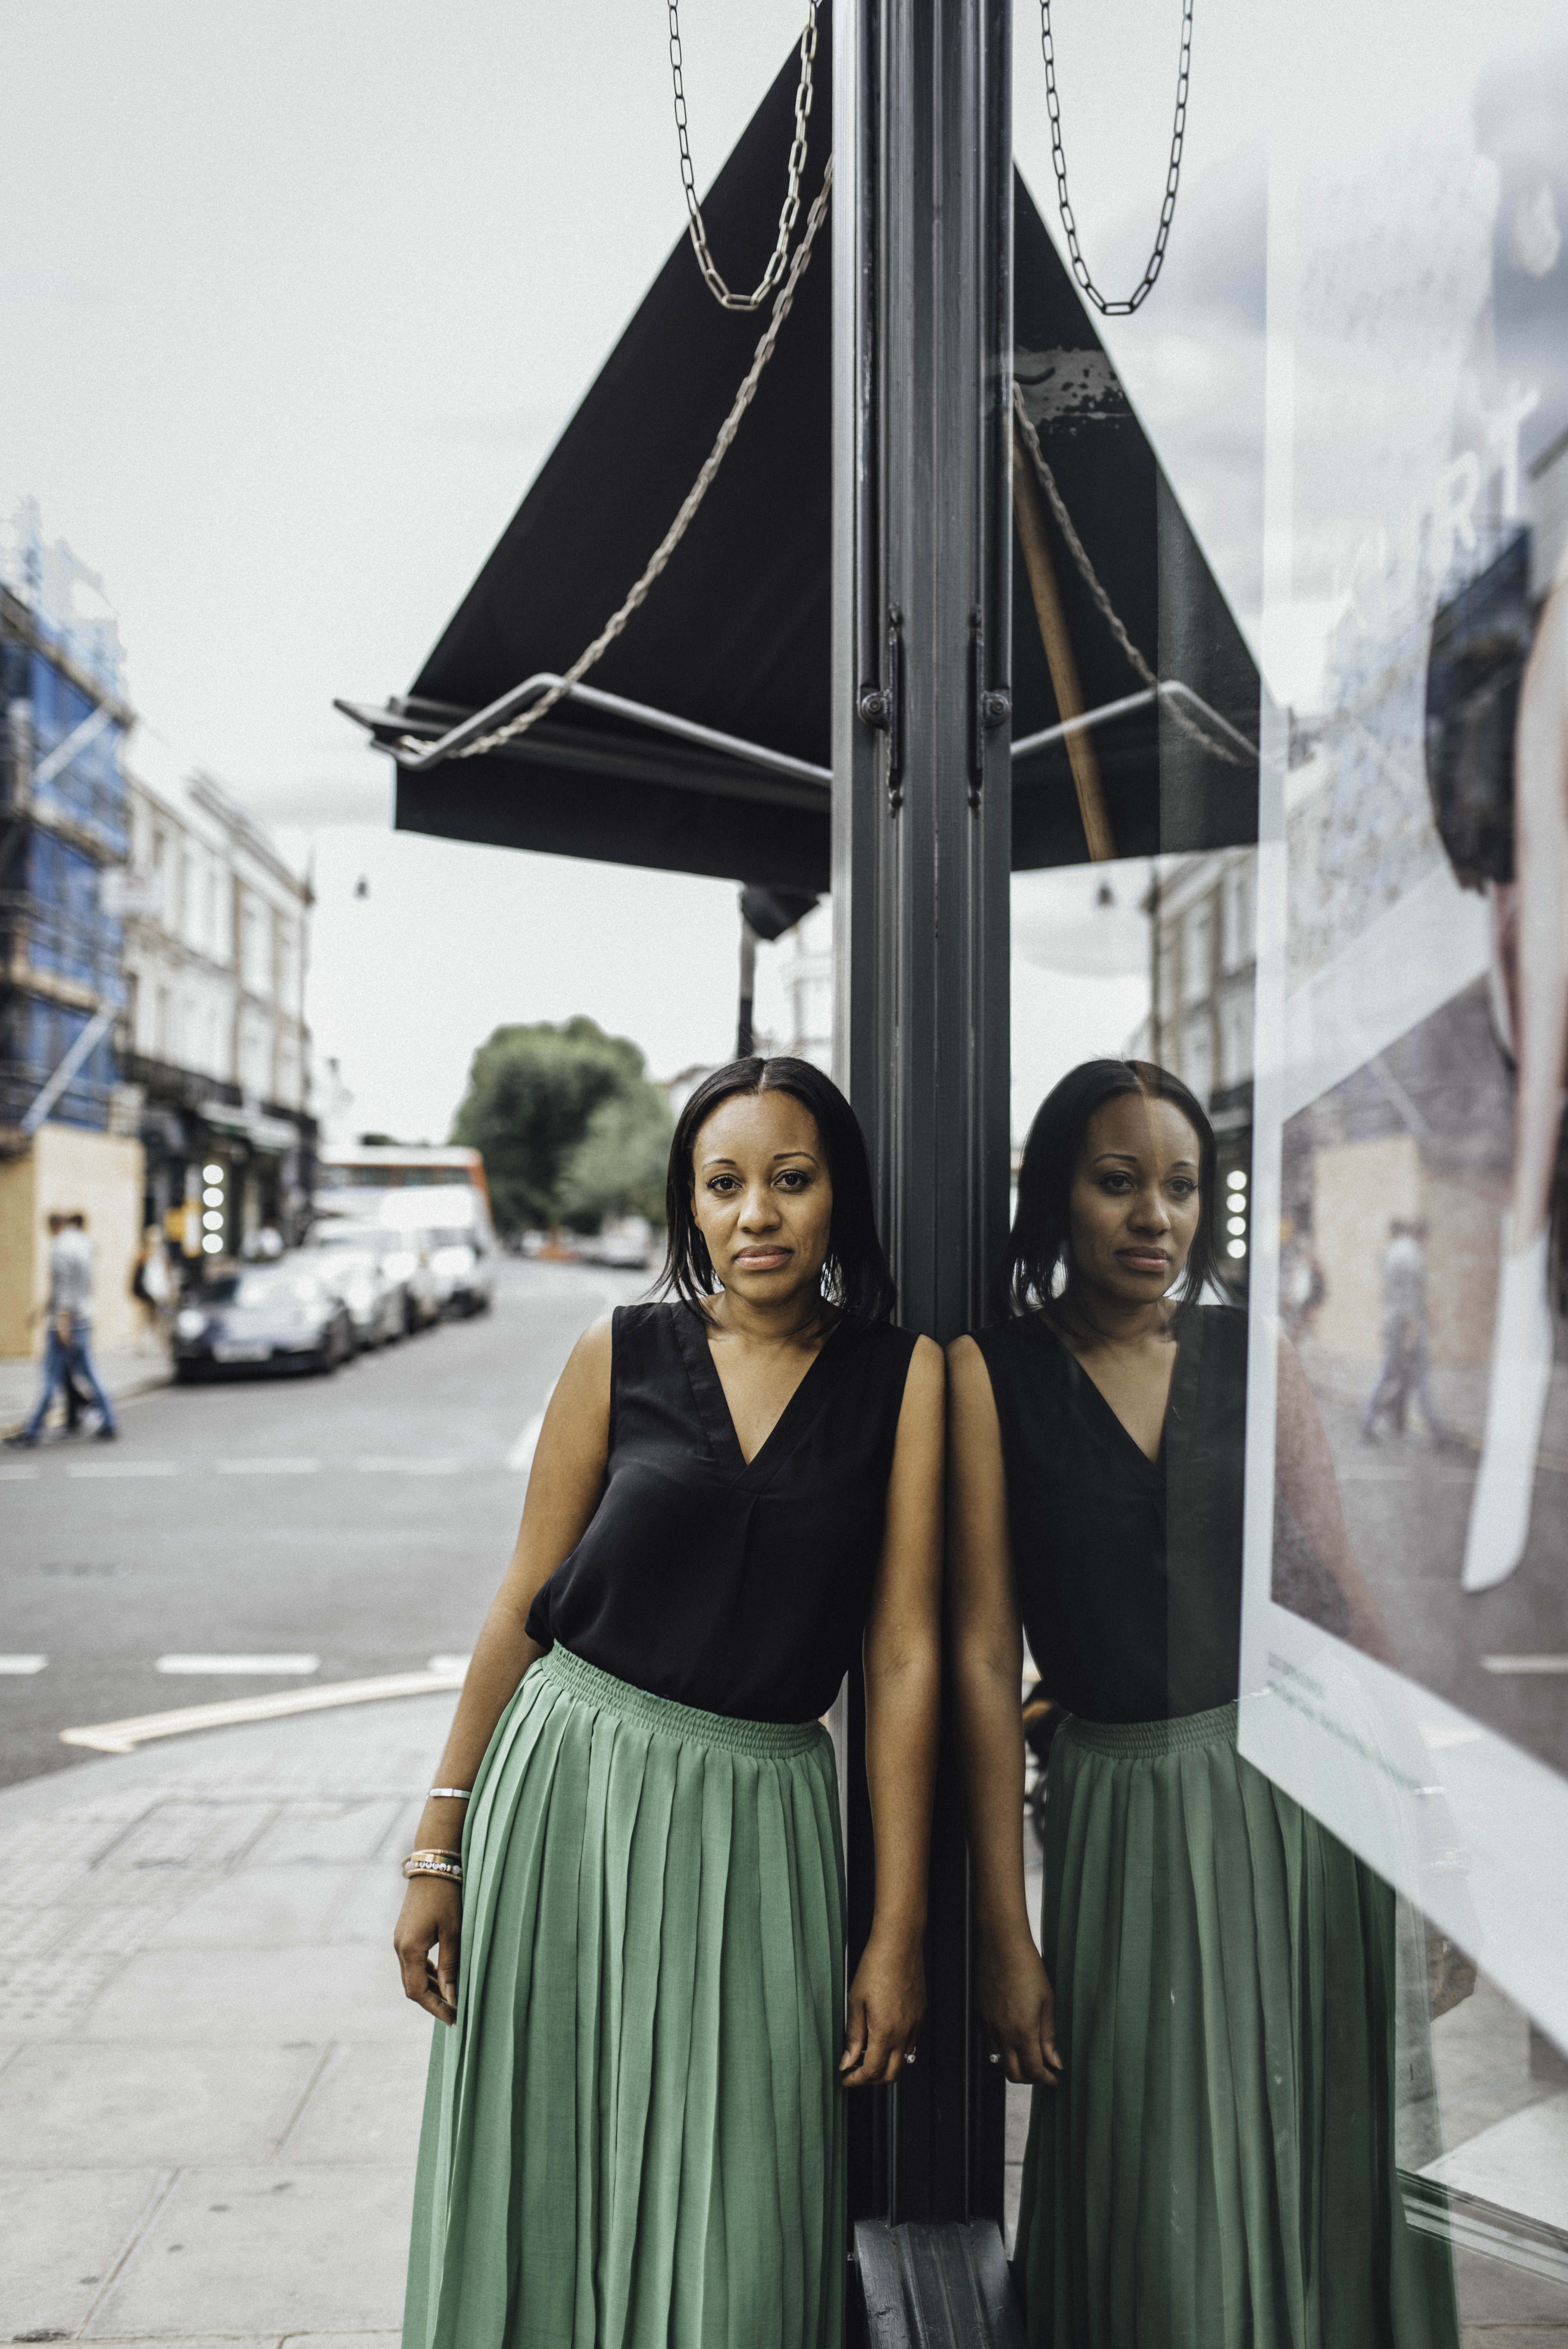 Creative portrait of a woman reflected against glass. Creative london branding shoot